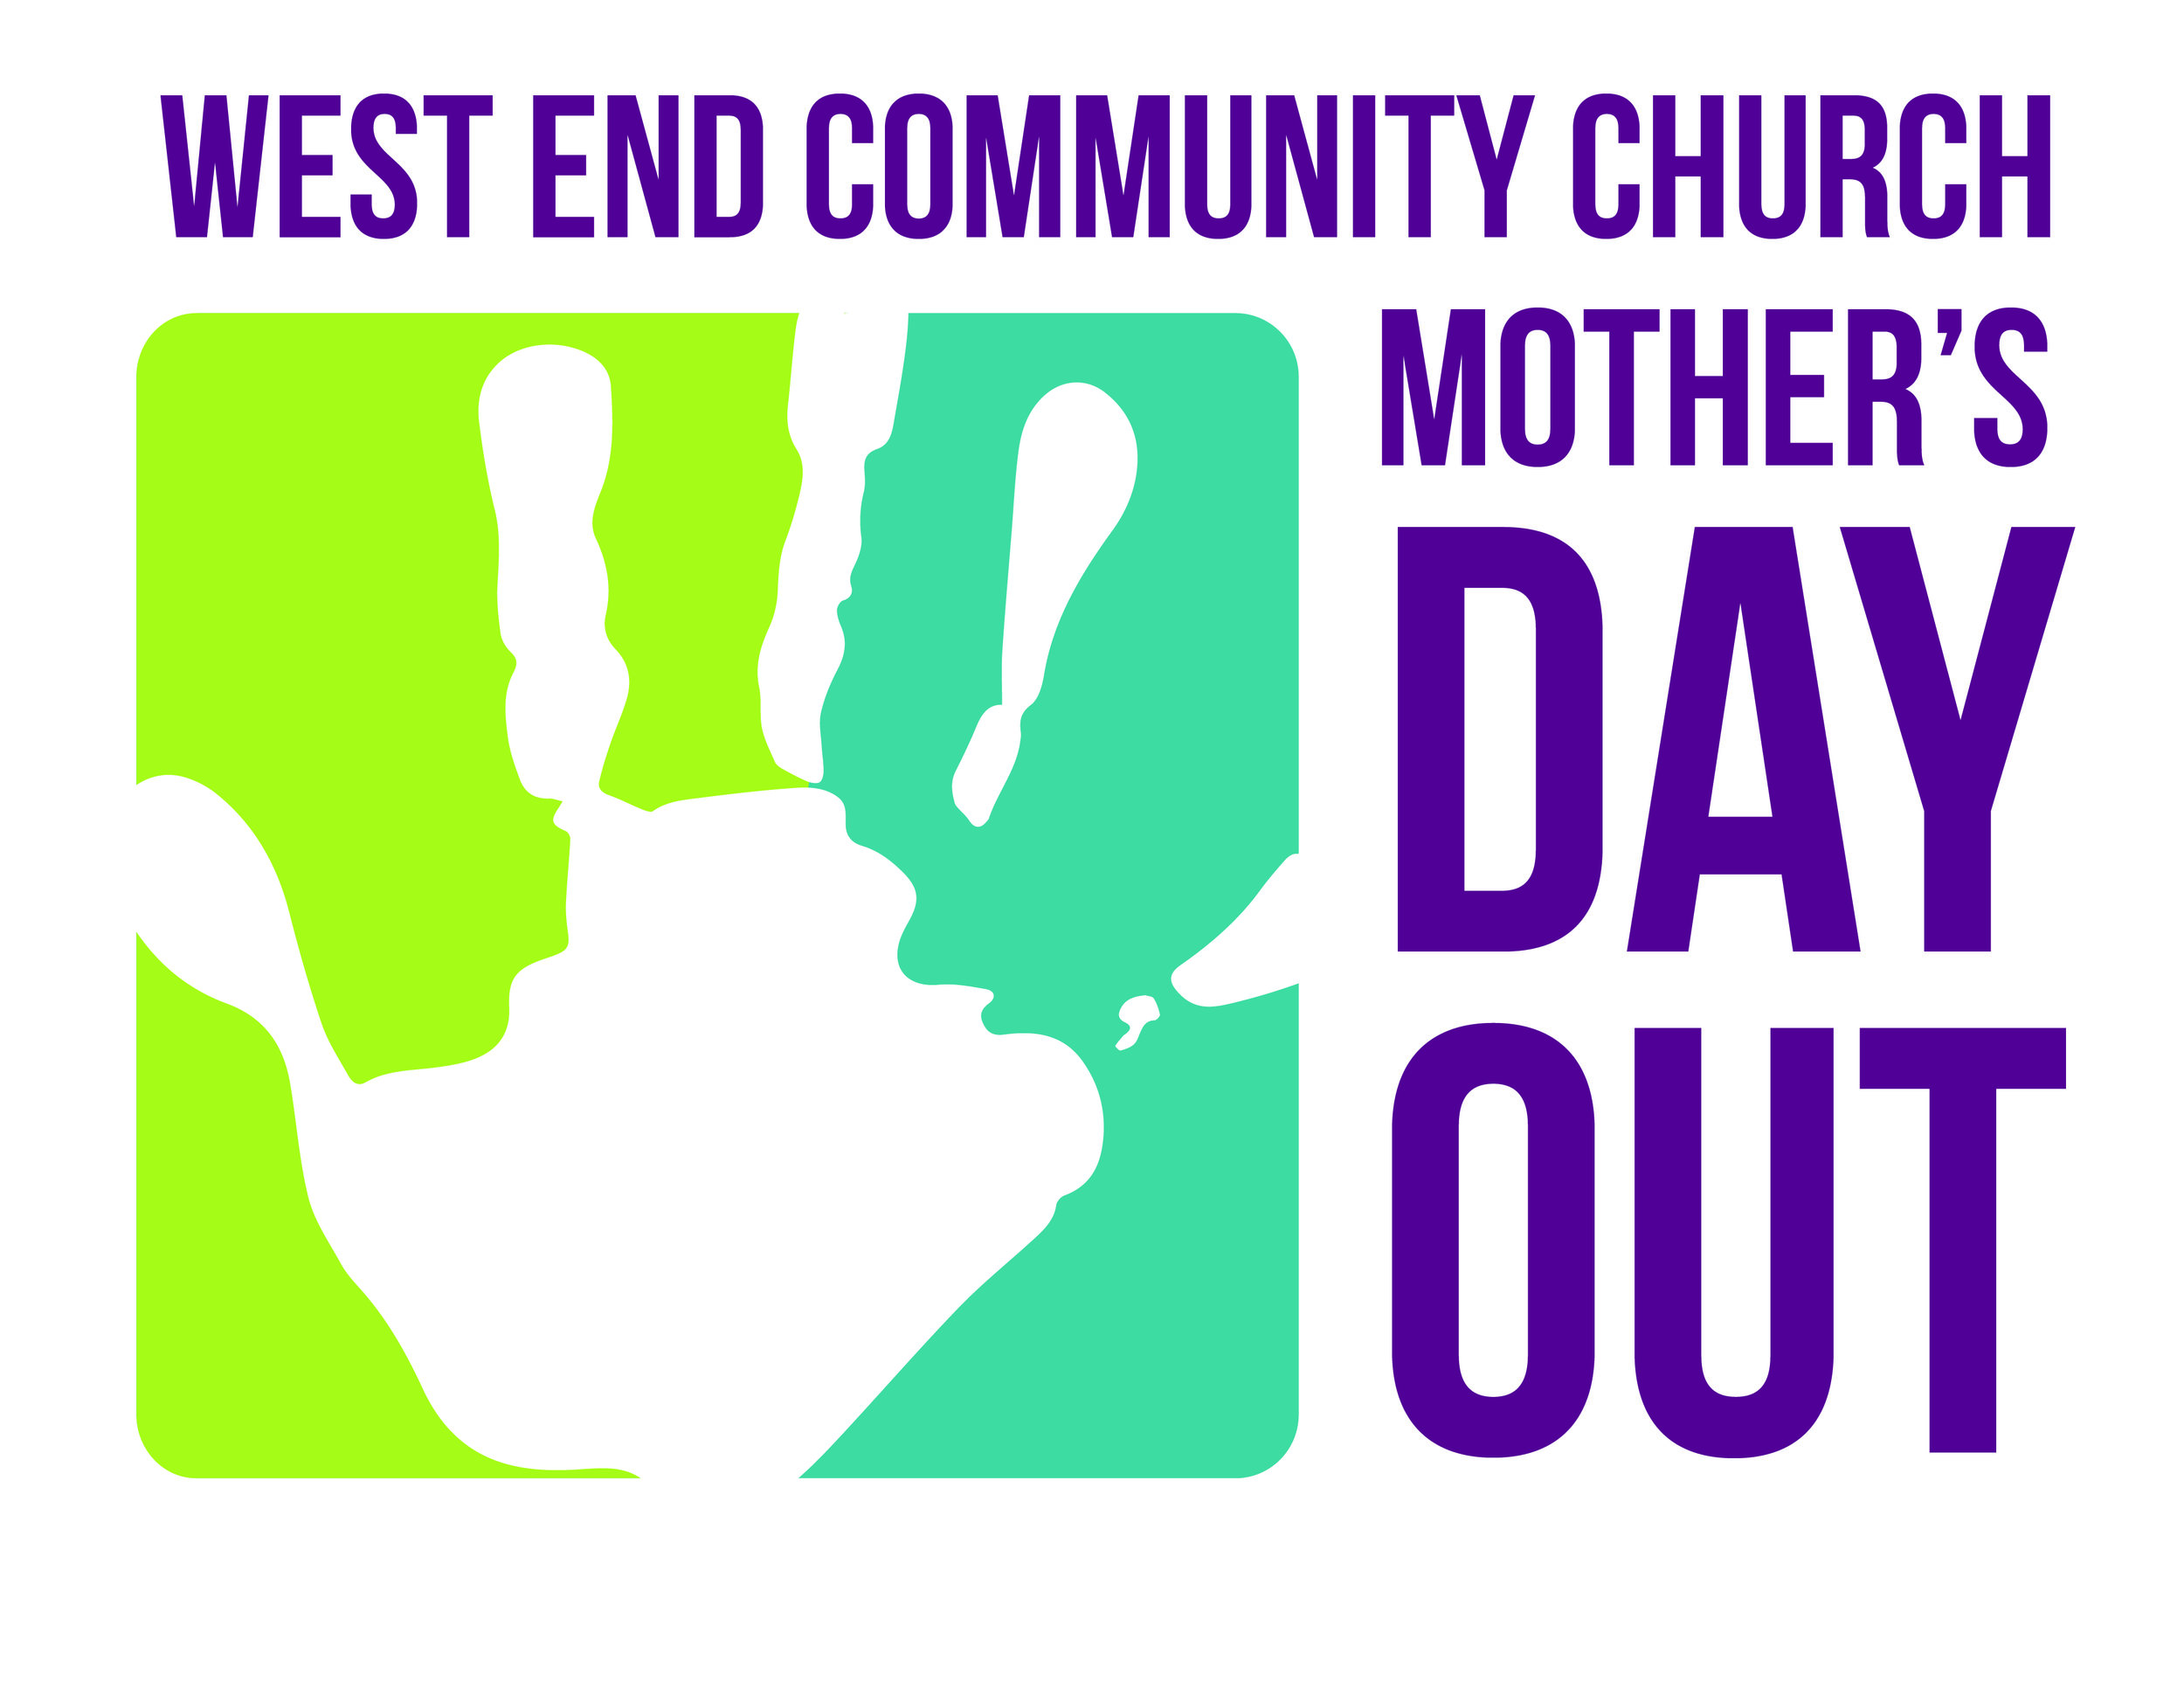 - The Mother's Day Out ministry of West End Community Church aims to provide a secure, loving and Christ-centered environment for children to grow and develop as Jesus did, in wisdom and stature, and in favor with God and men. Luke 2:52